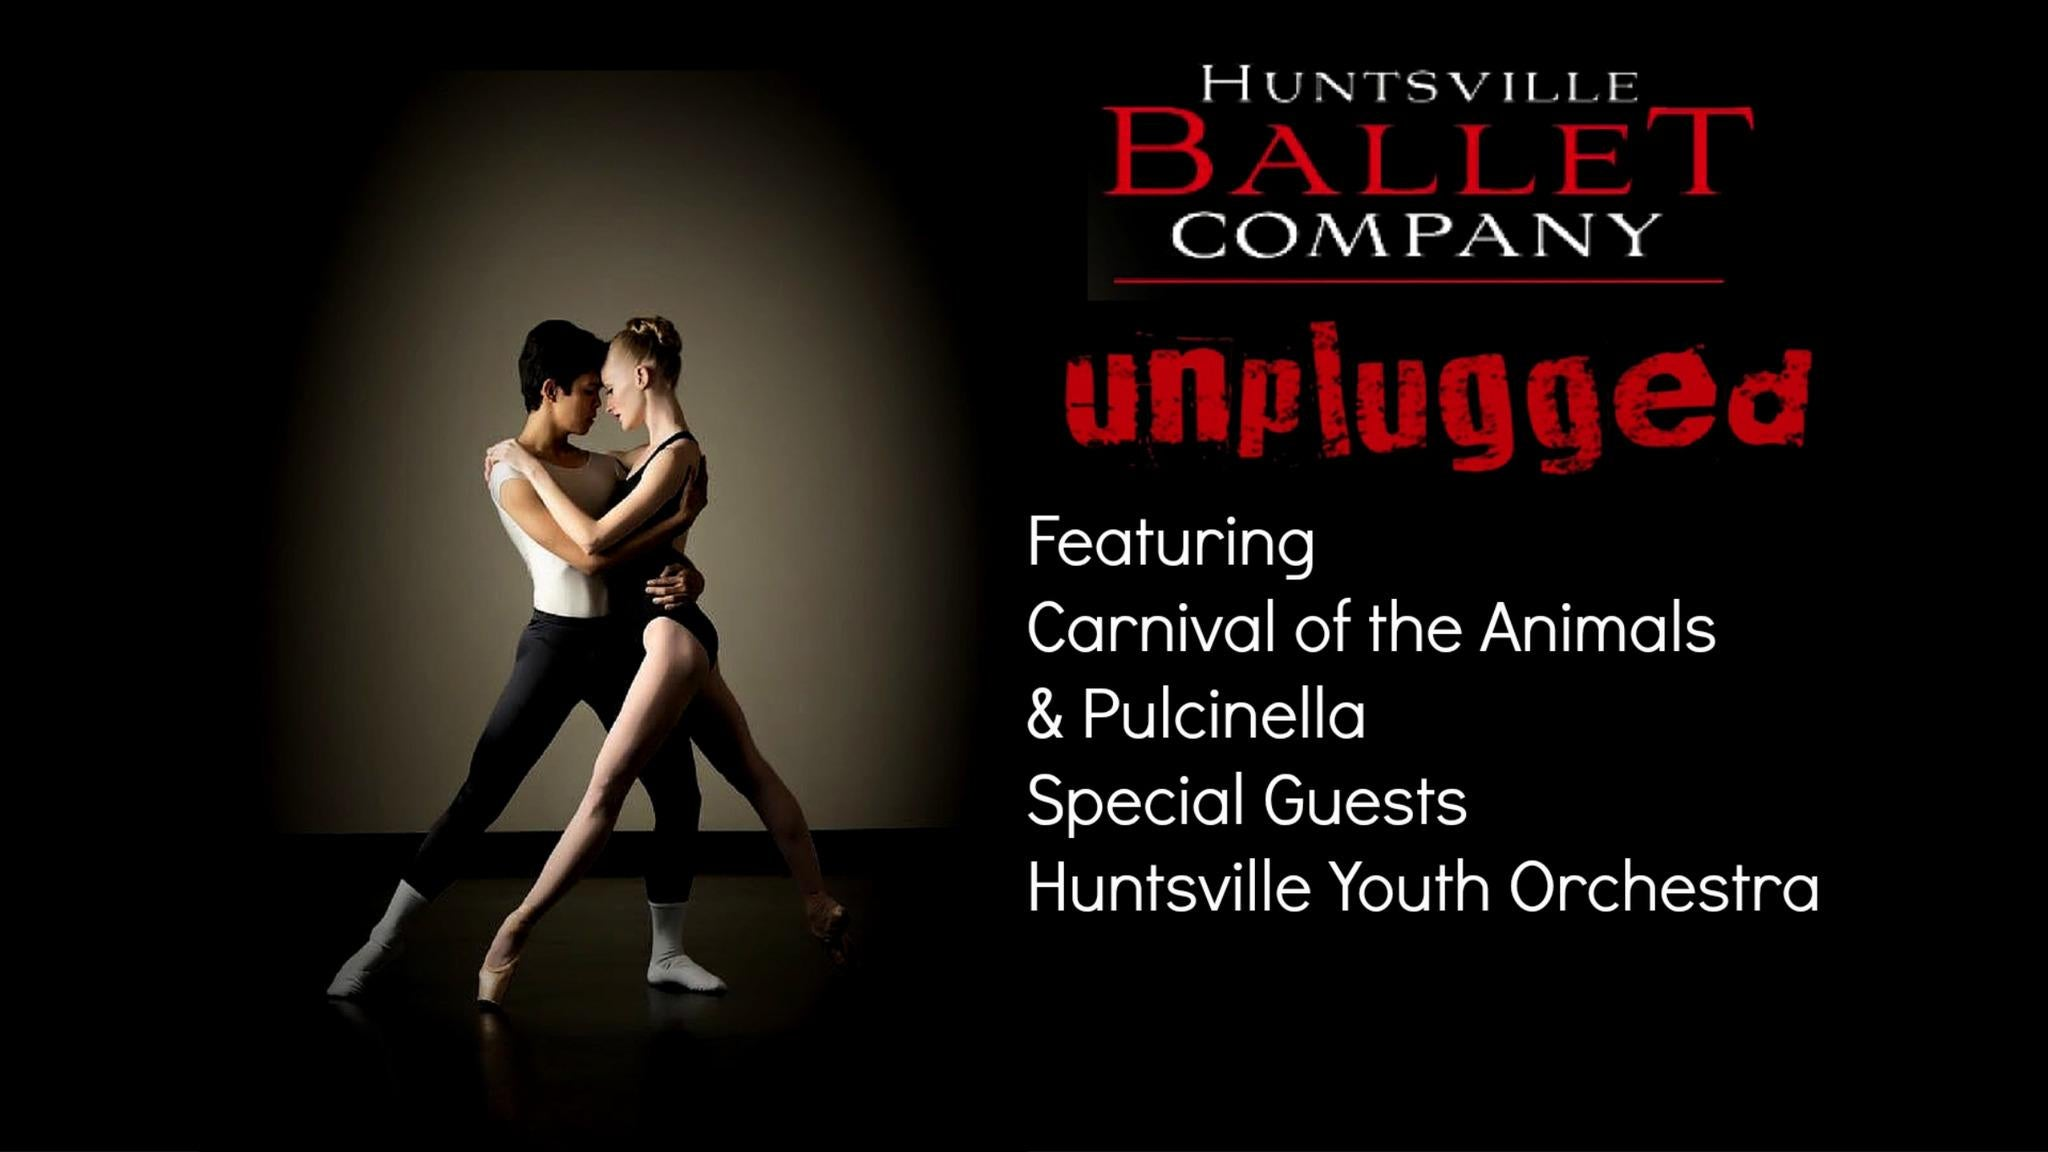 SORRY, THIS EVENT IS NO LONGER ACTIVE<br>Huntsville Ballet Company at Von Braun Center Concert Hall - Huntsville, AL 35801